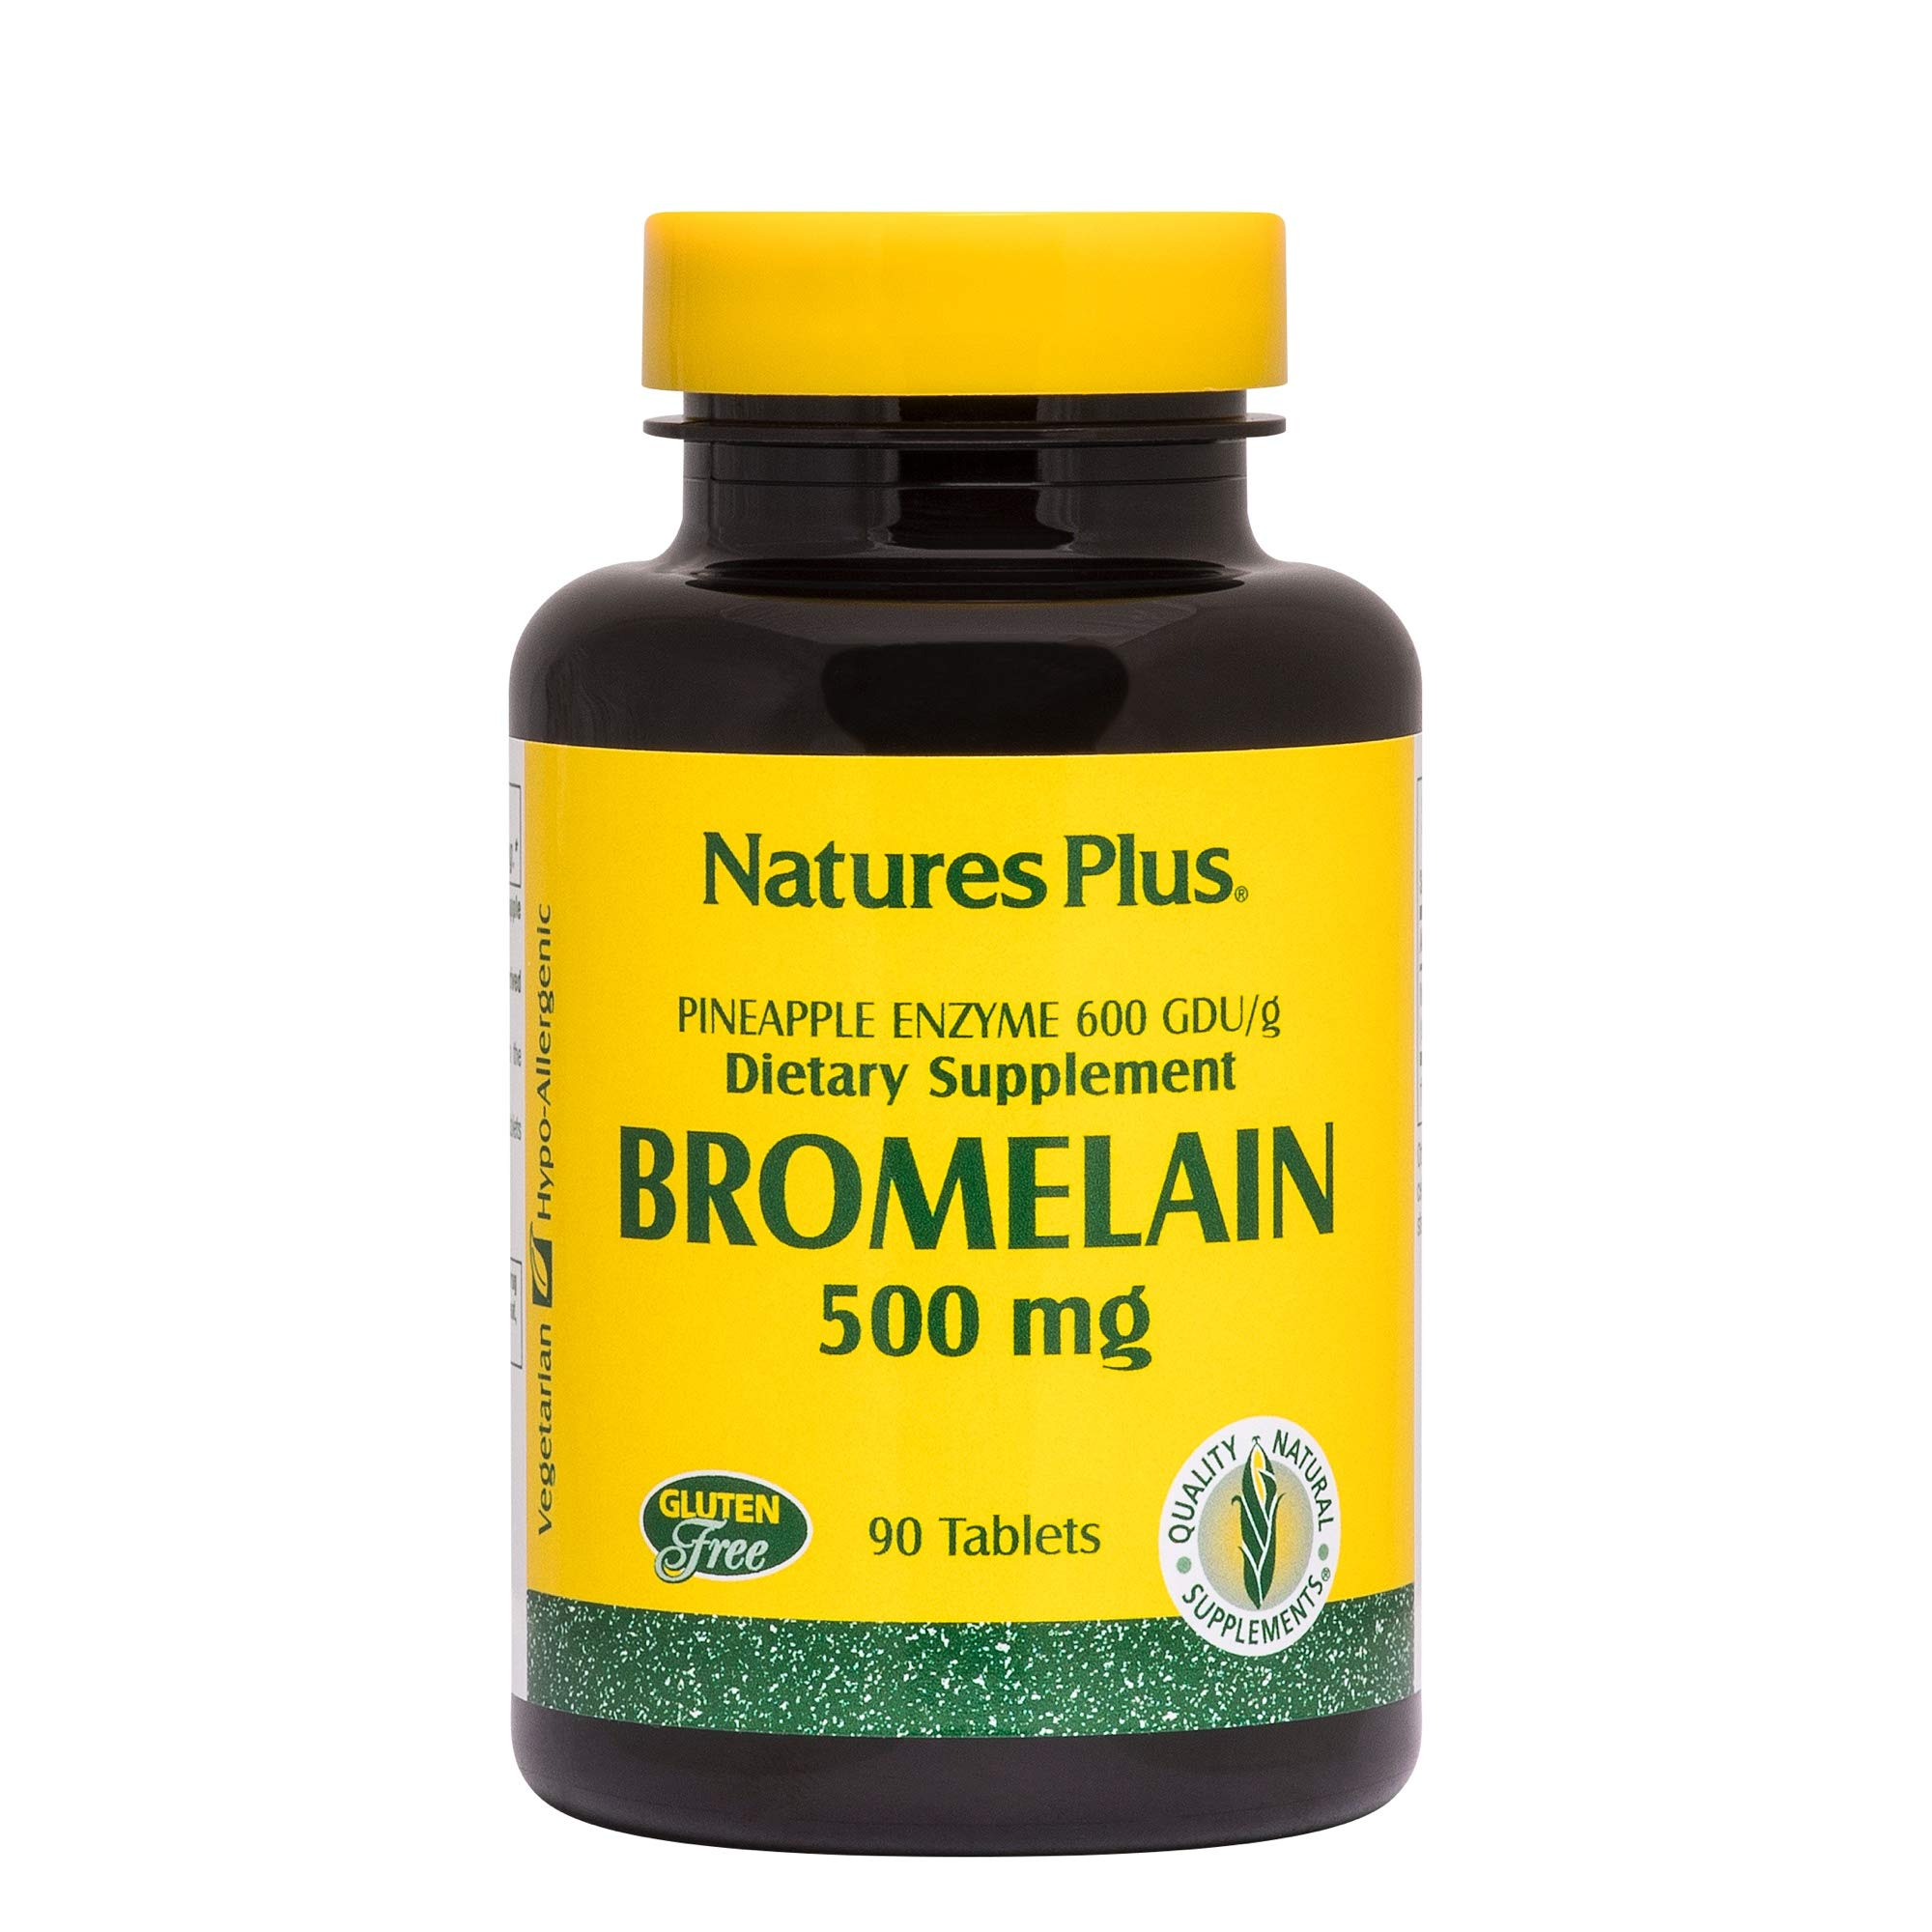 Natures Plus Bromelain - 500 mg, 90 Vegetarian Tablets - Natural Proteolytic Enzyme Supplement, Sinus Support Supplement, Anti Inflammatory - Gluten Free - 90 Servings